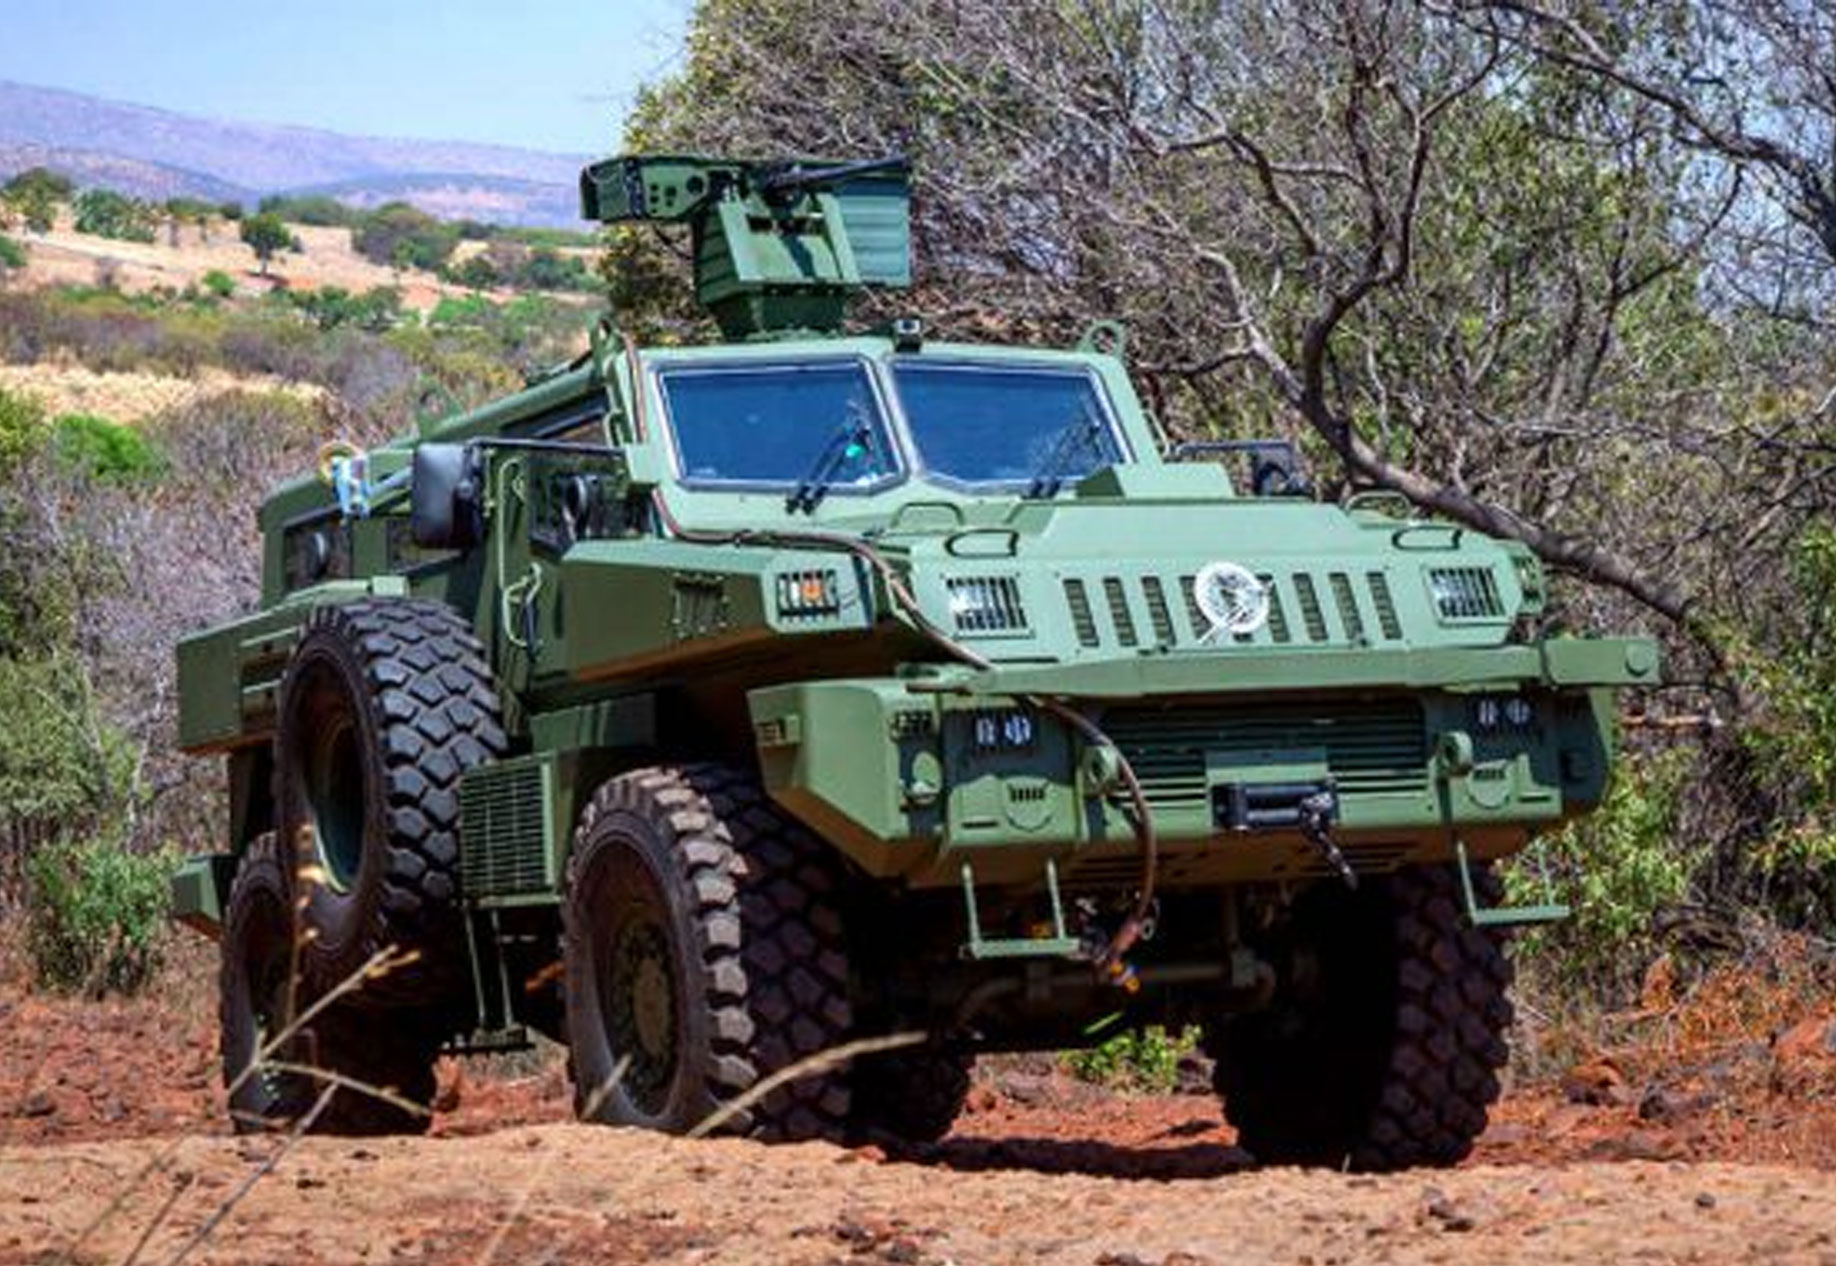 South Africa's Paramount Marauder Armored Vehicle| Military